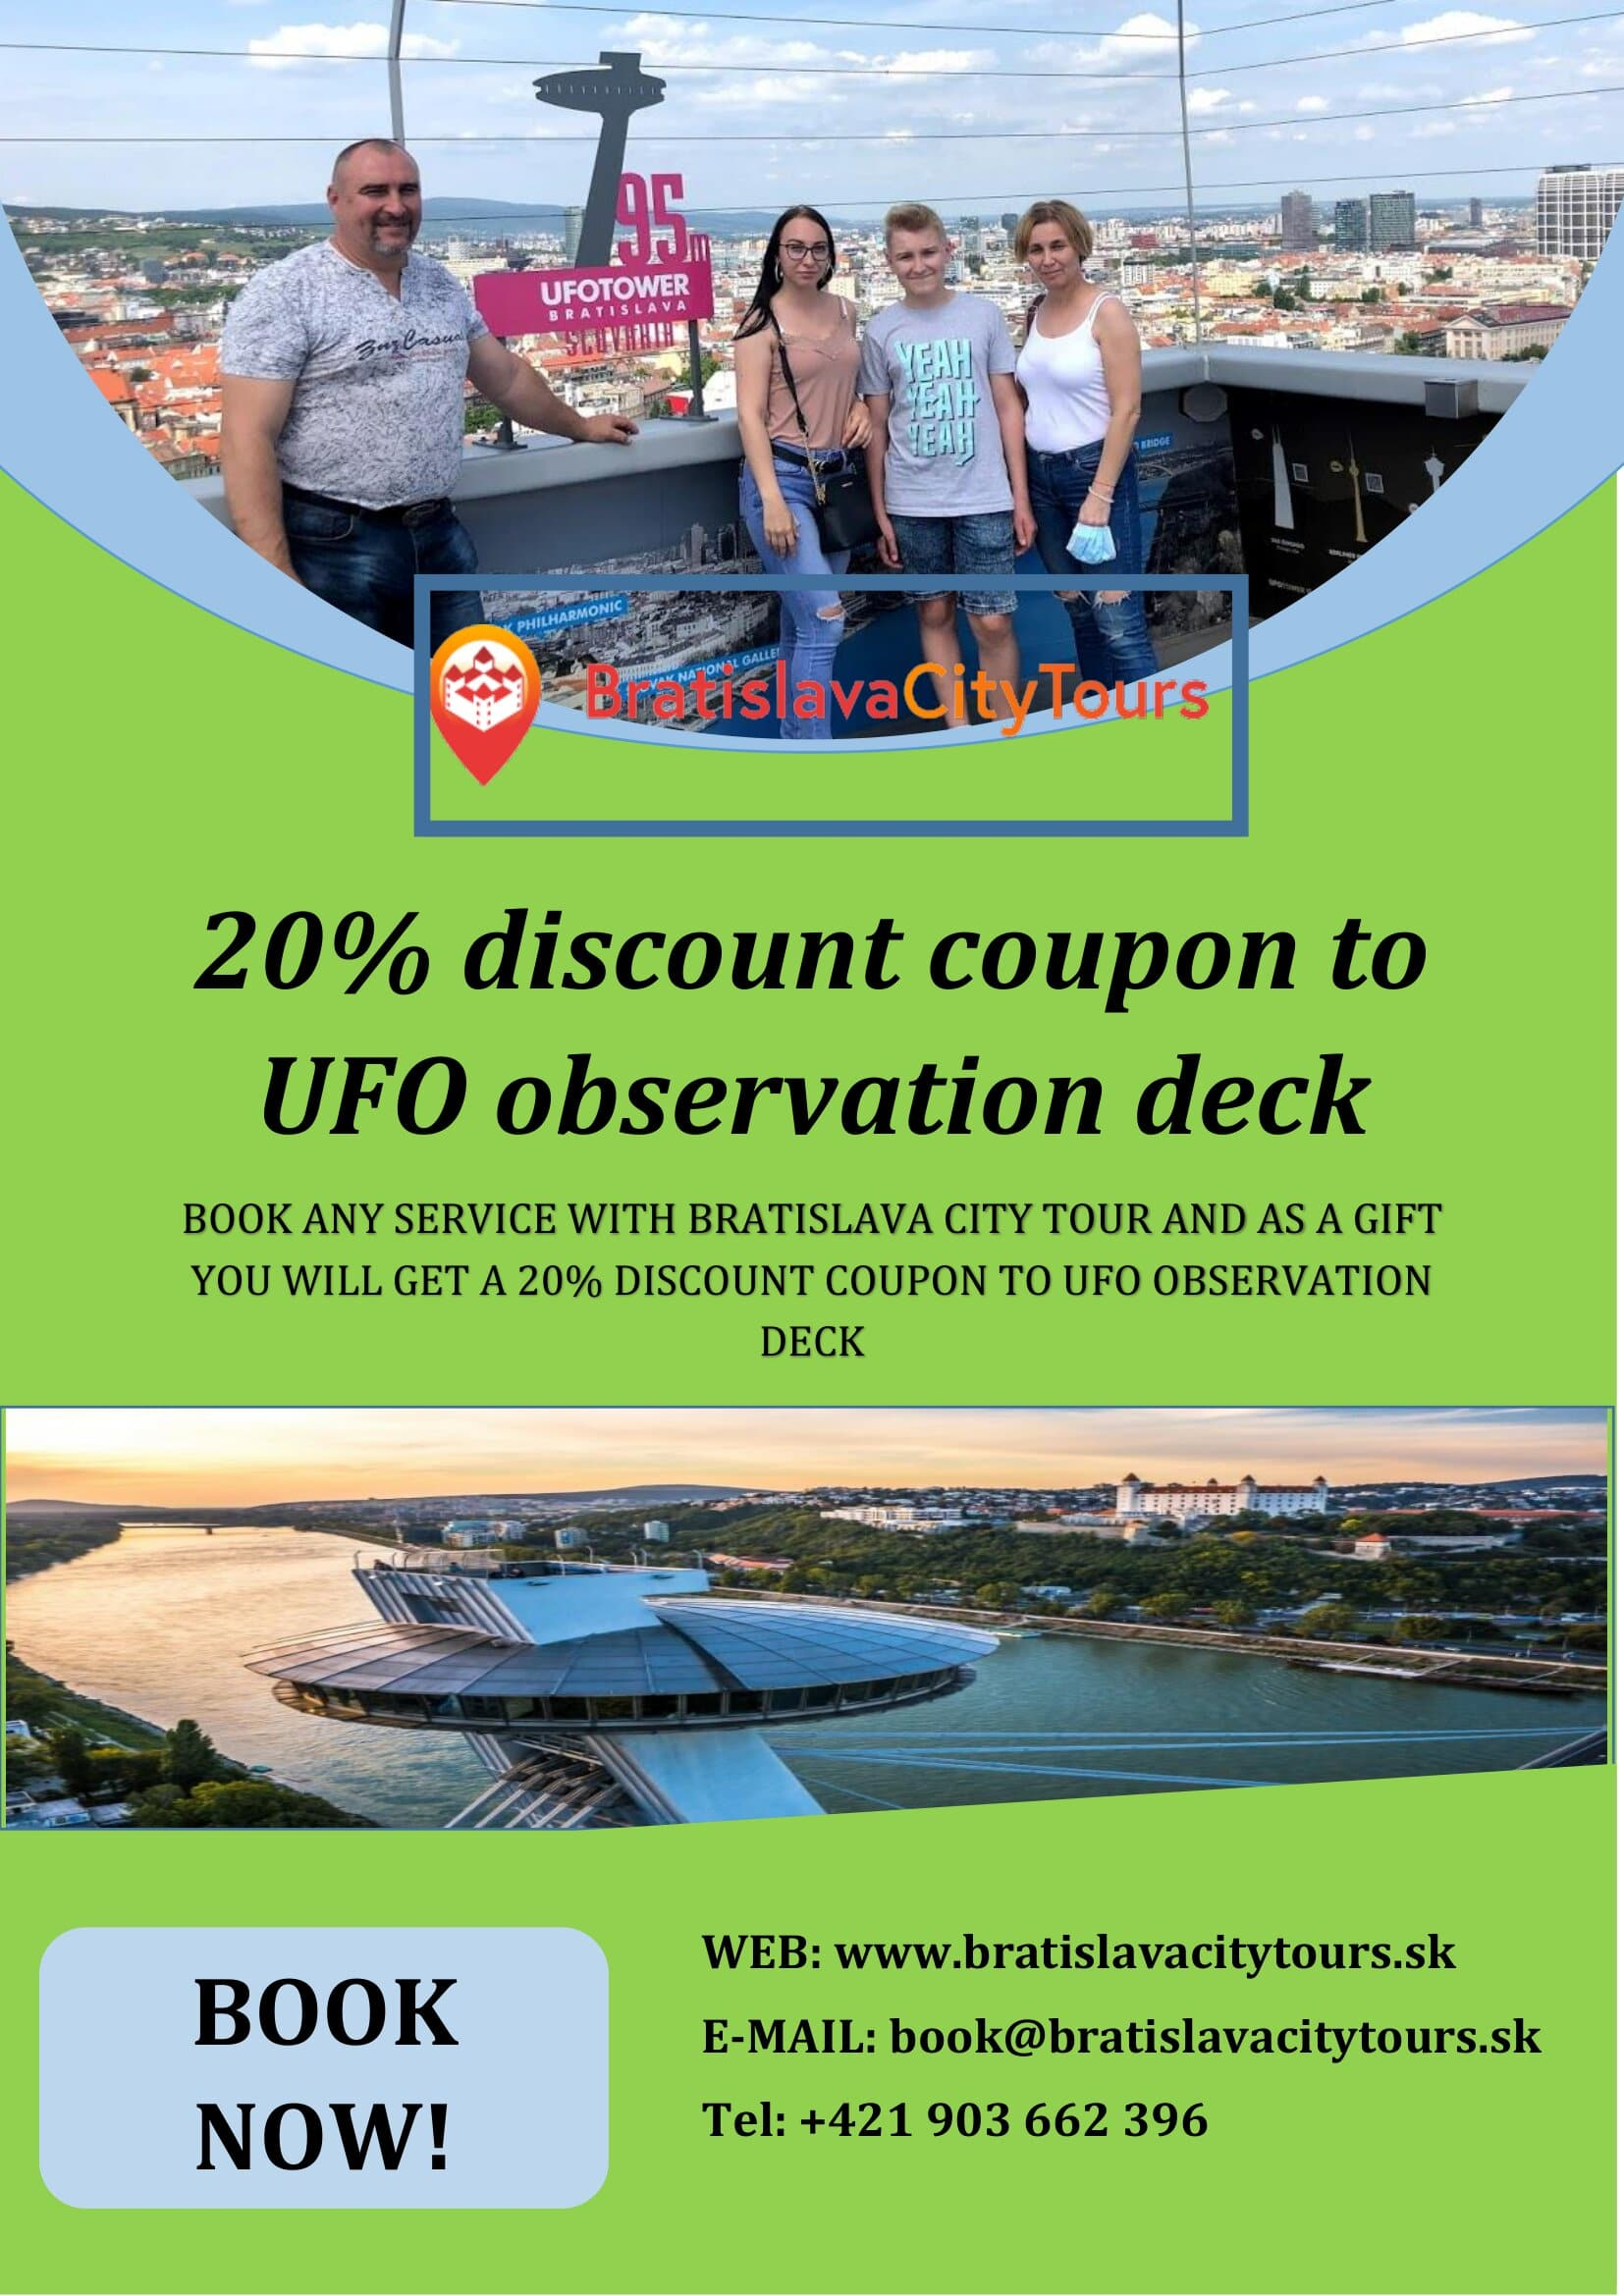 20% discount on entrance to UFO observation deck